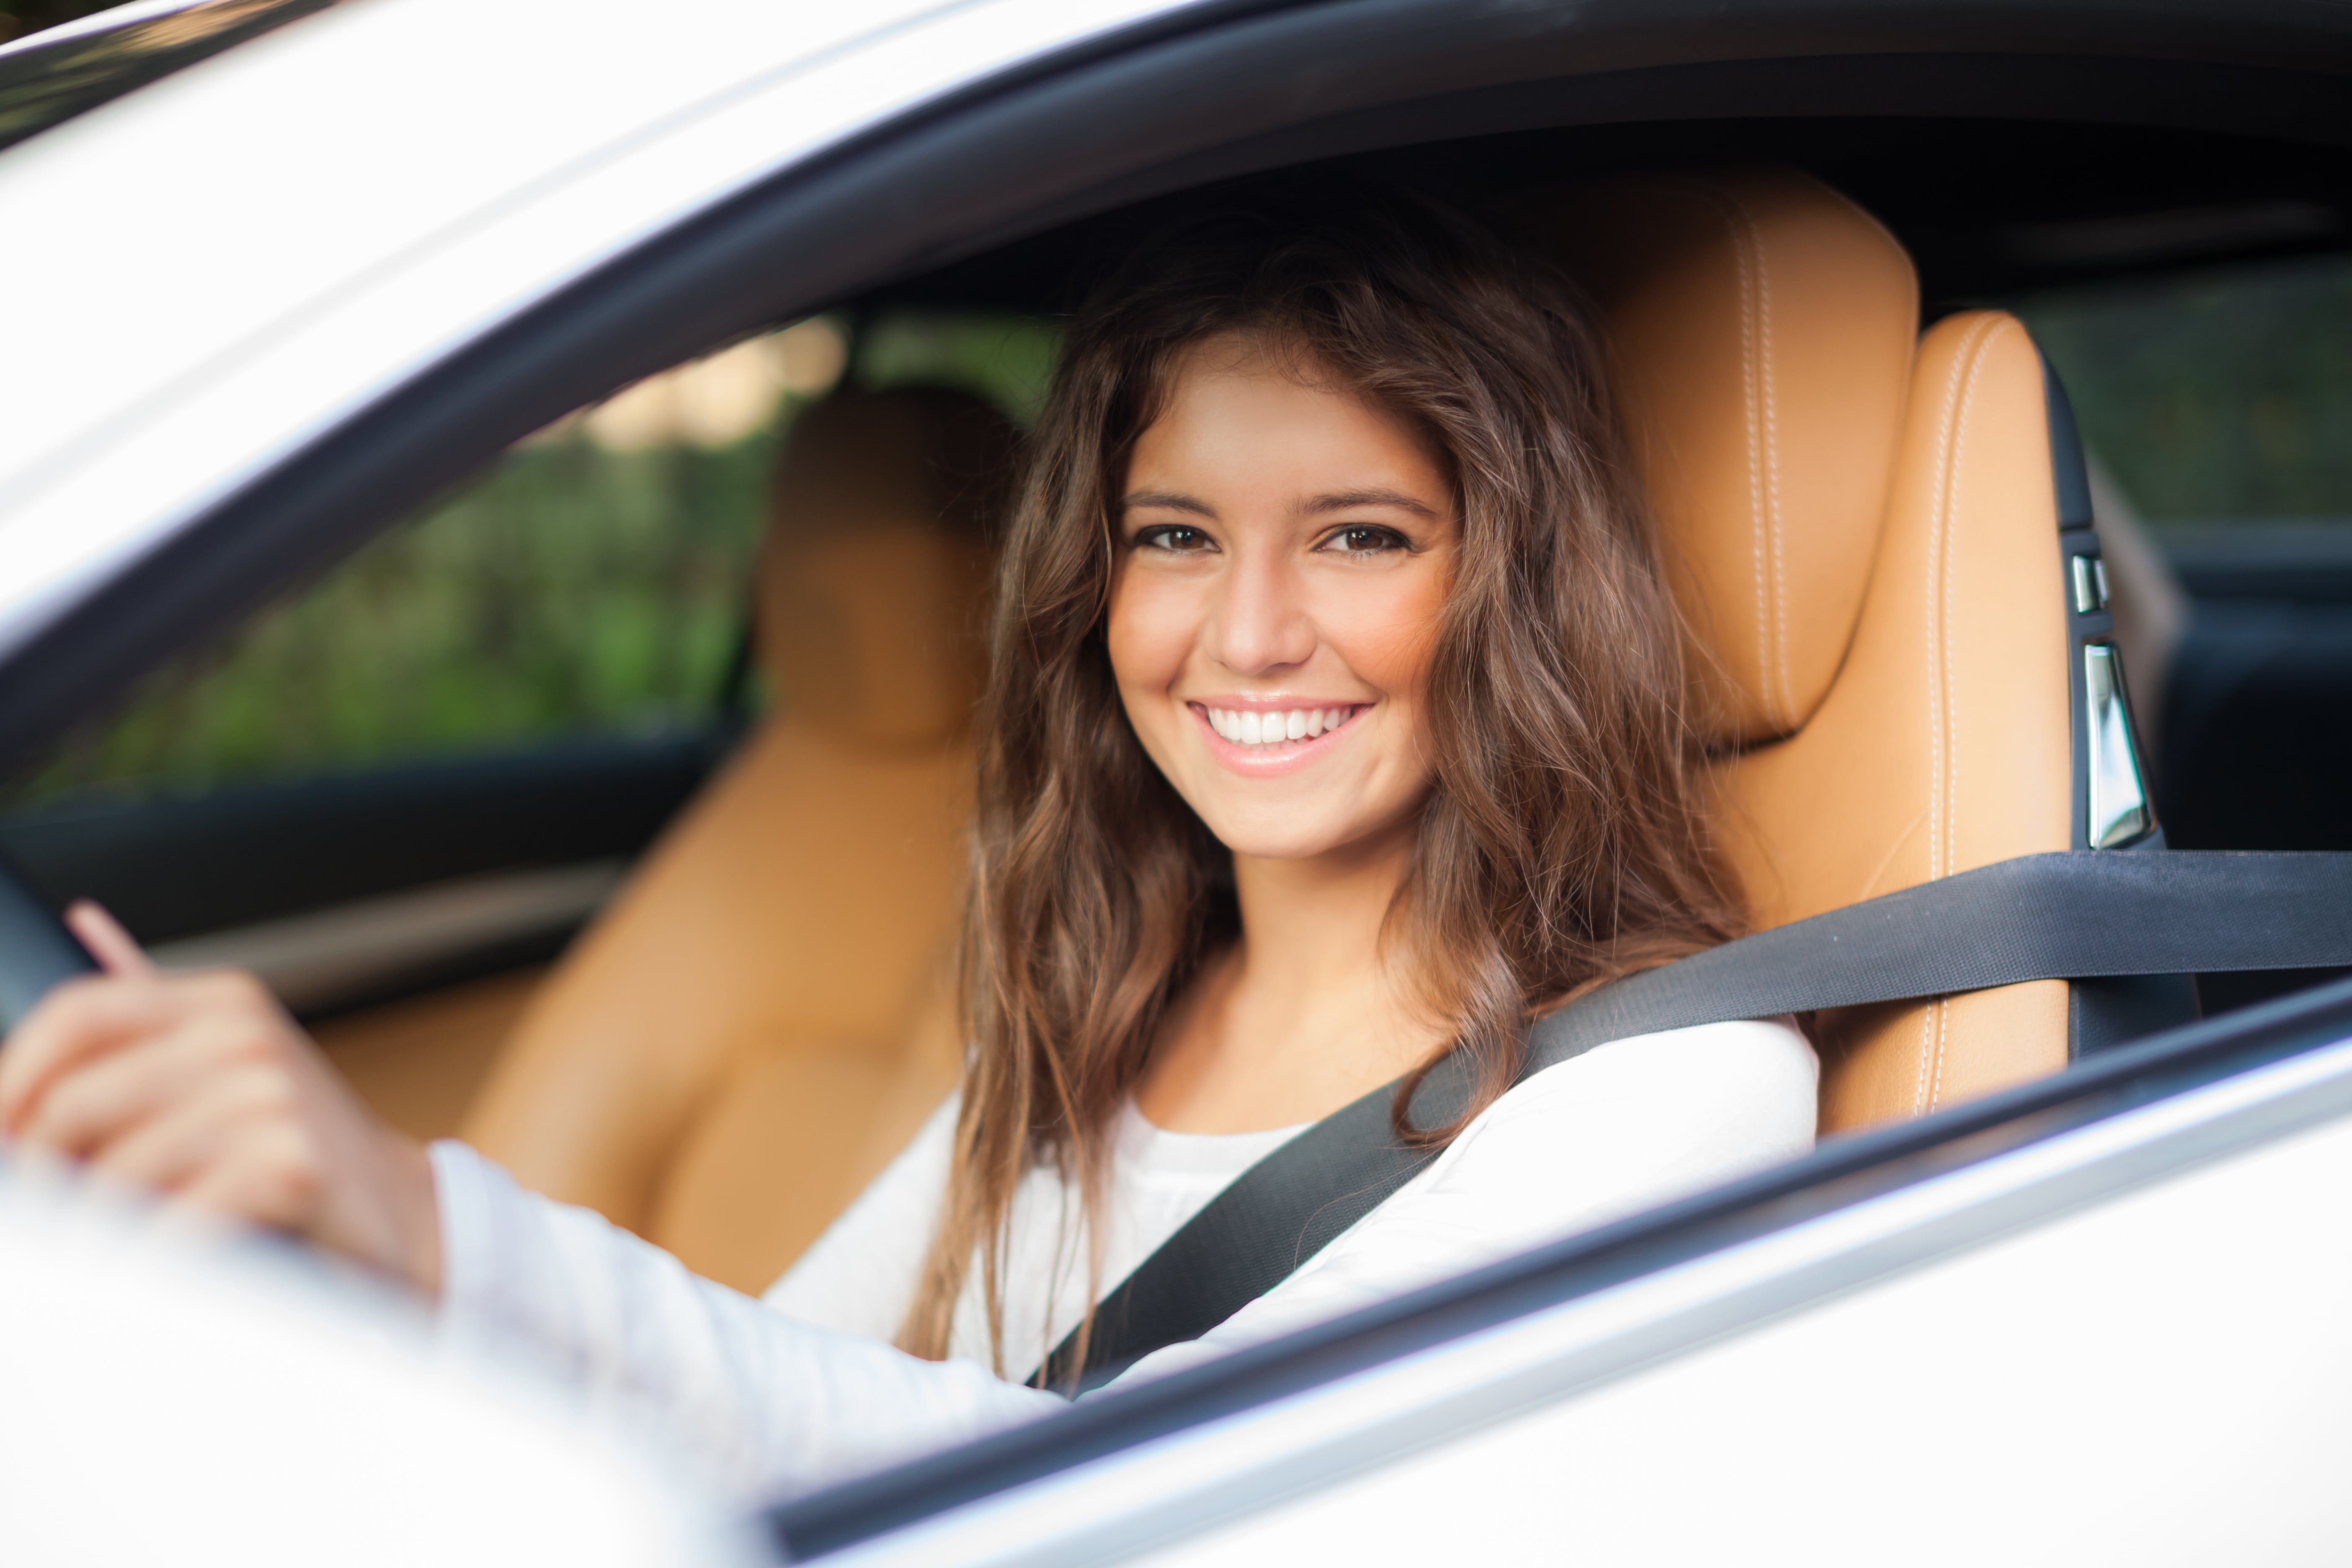 Teen Driving, Driving Principles, Teen Driver, Road Safety